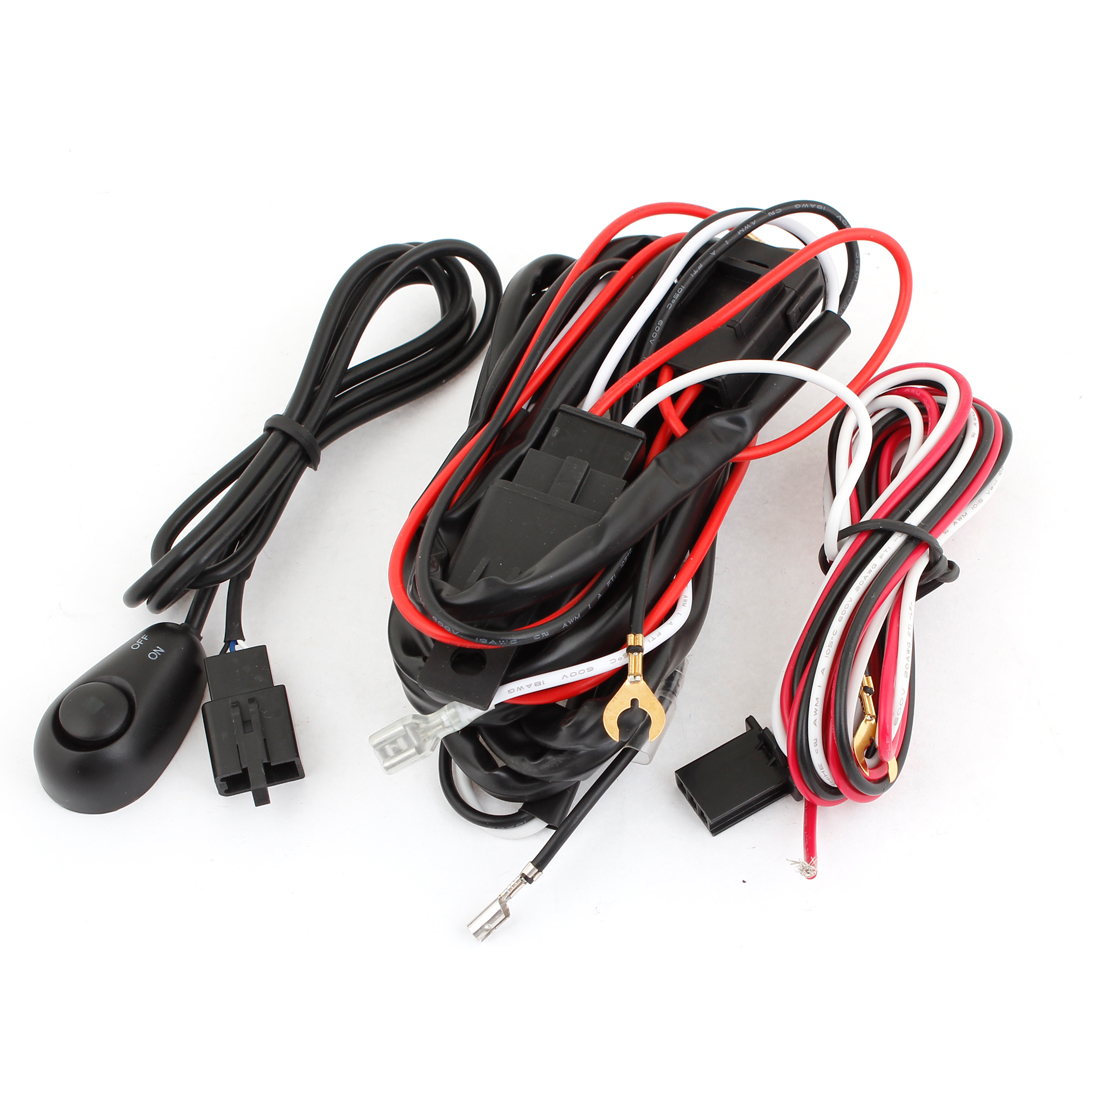 hight resolution of unique bargains universal fog light wire wiring harness kit w control switch w fuse walmart com